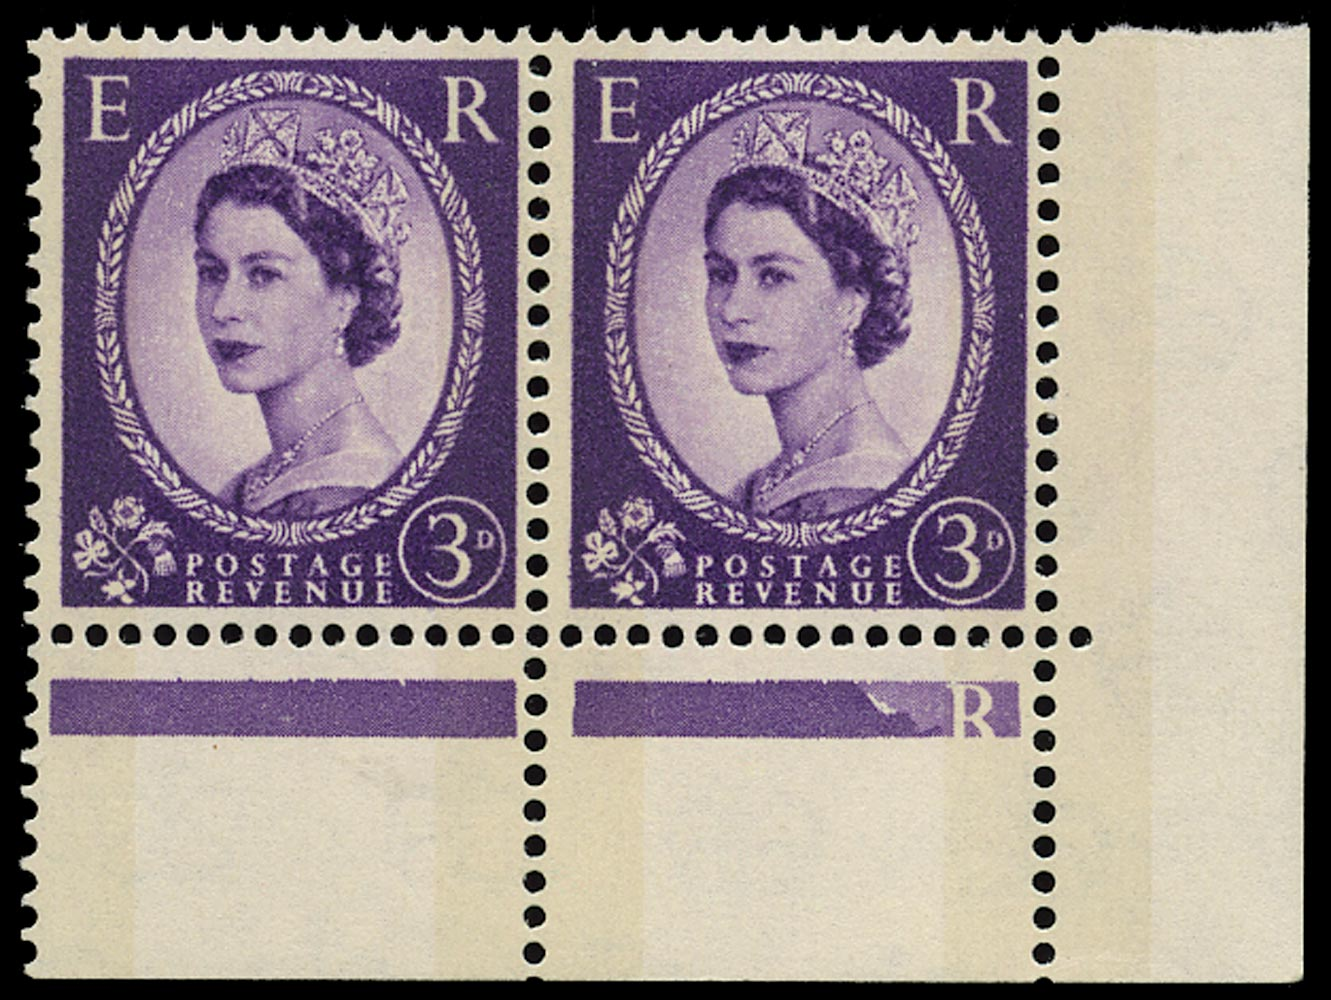 GB 1960  SG615aa Mint - Phantom 'R' variety